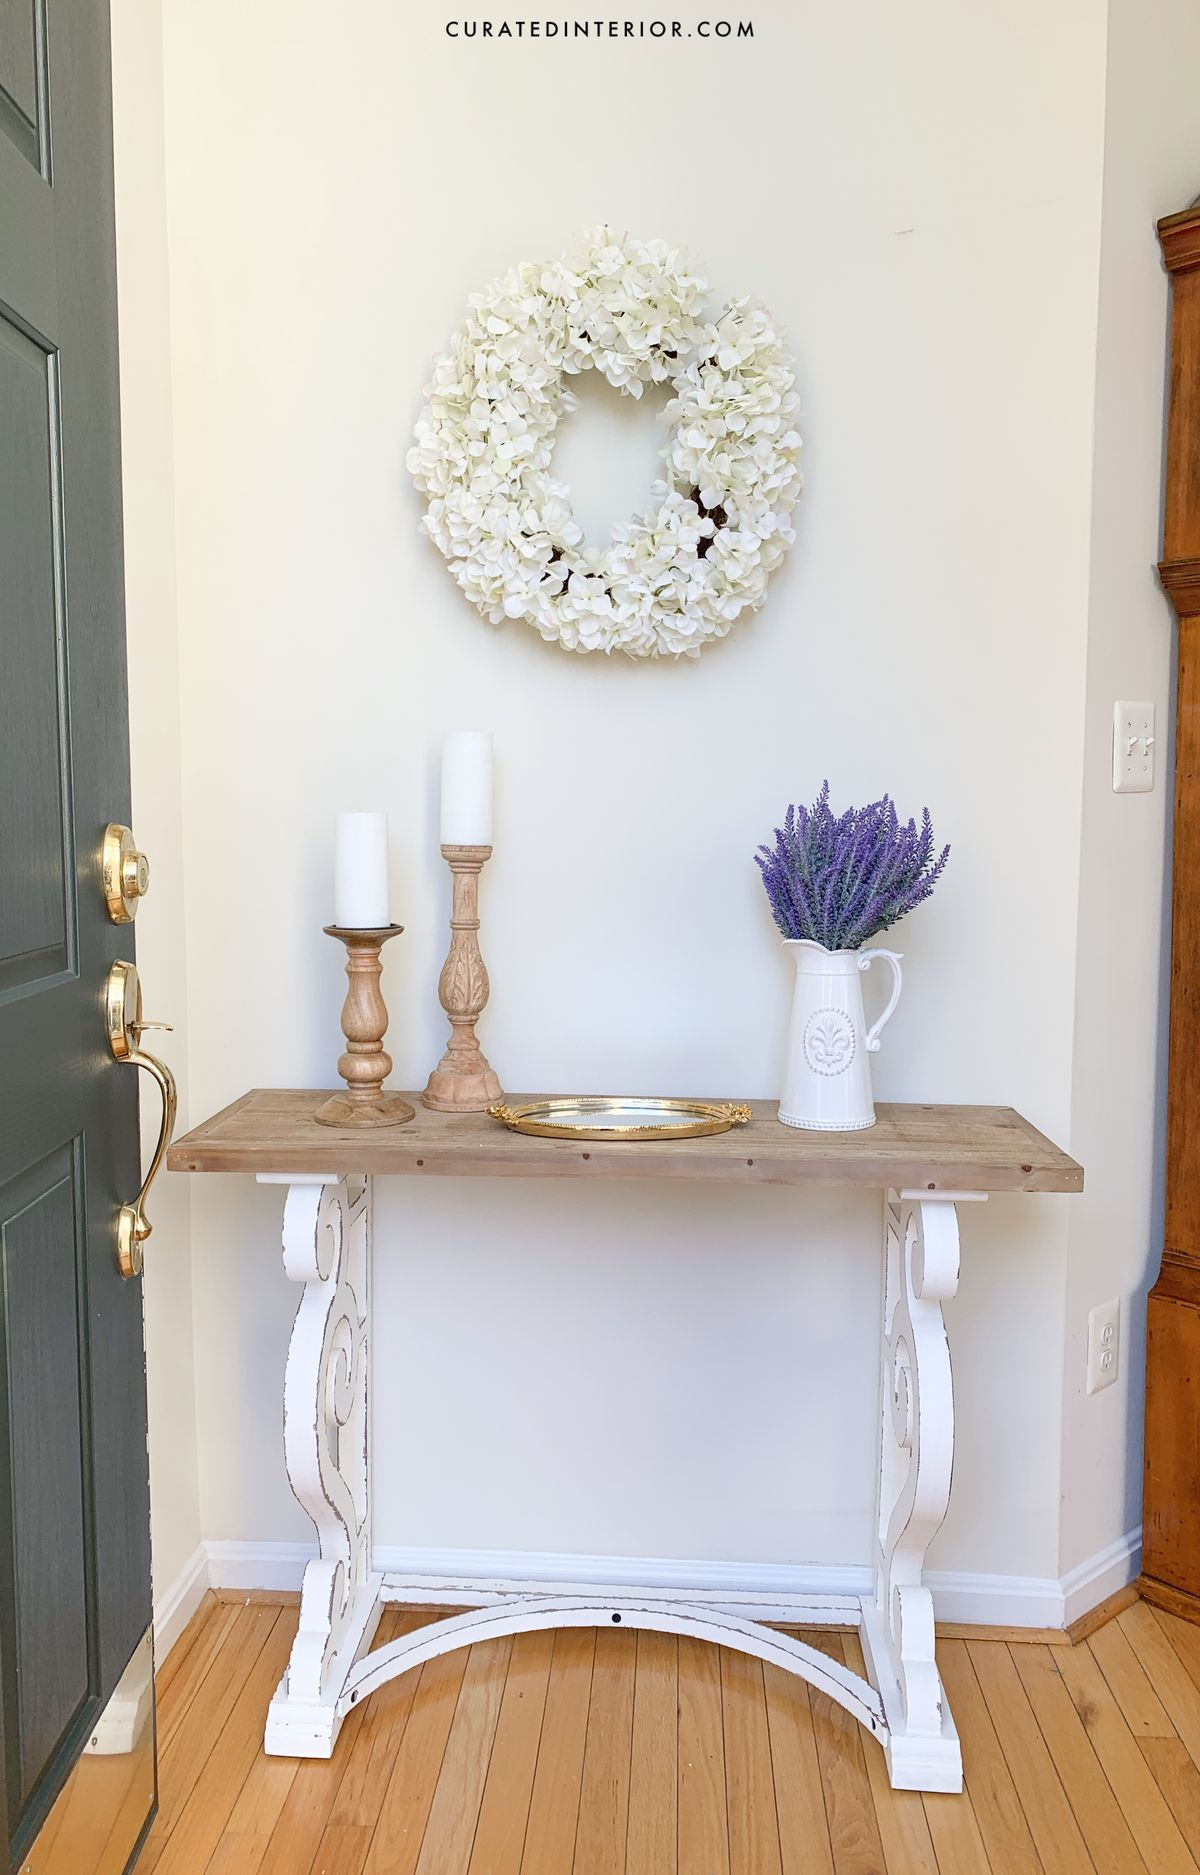 French Country Entryway with Floral Wreath, Wood Console Table and Lavender in a white Farmhouse Pitcher